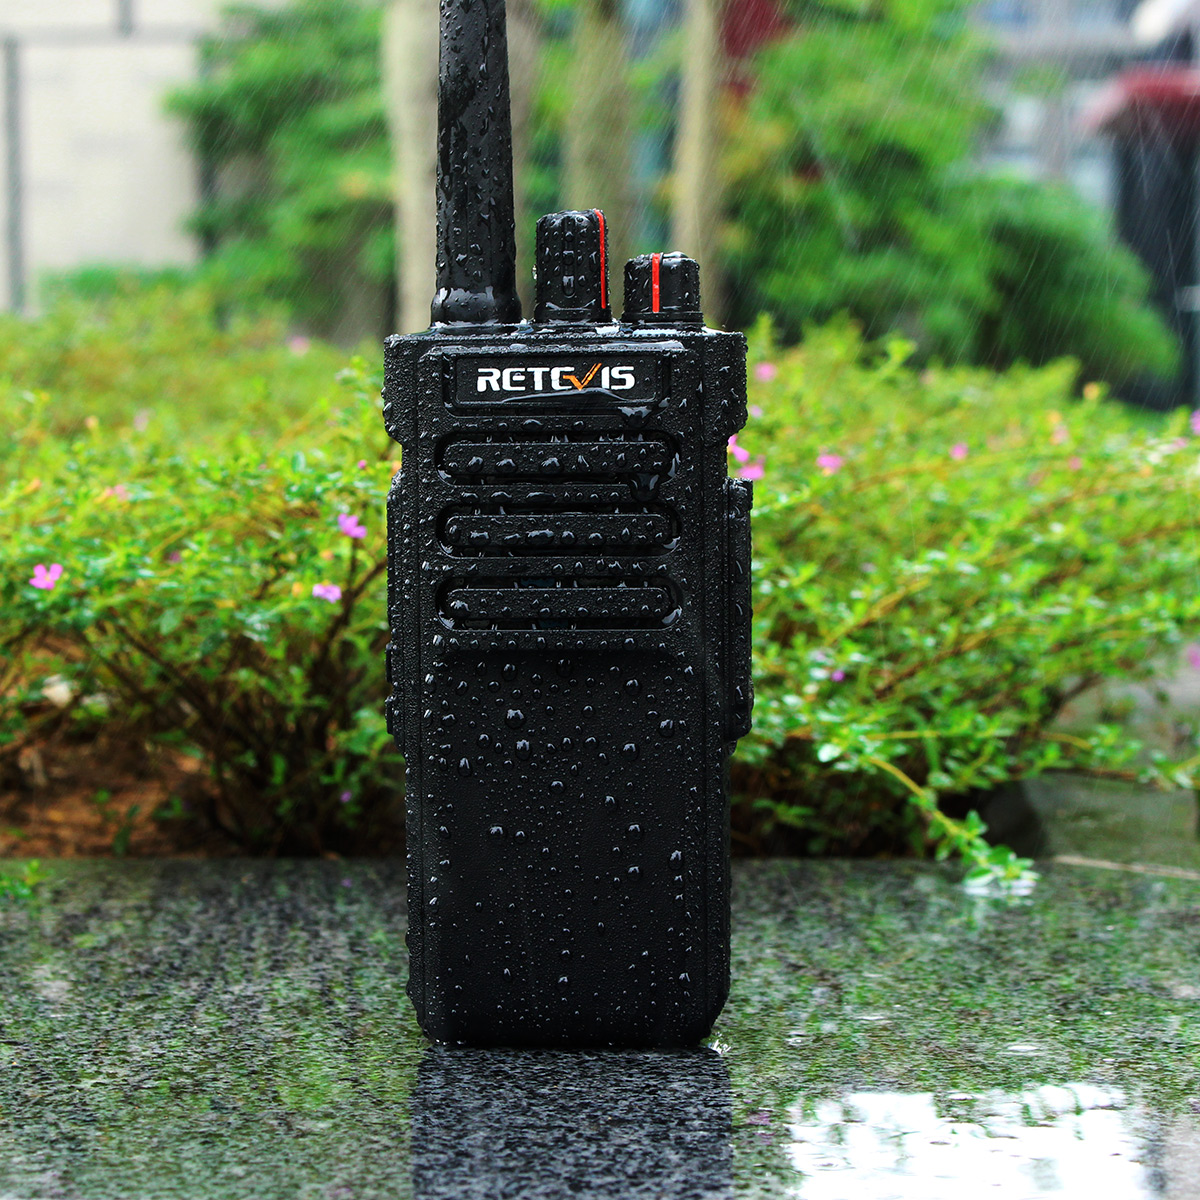 Waterproof walkie-talkie